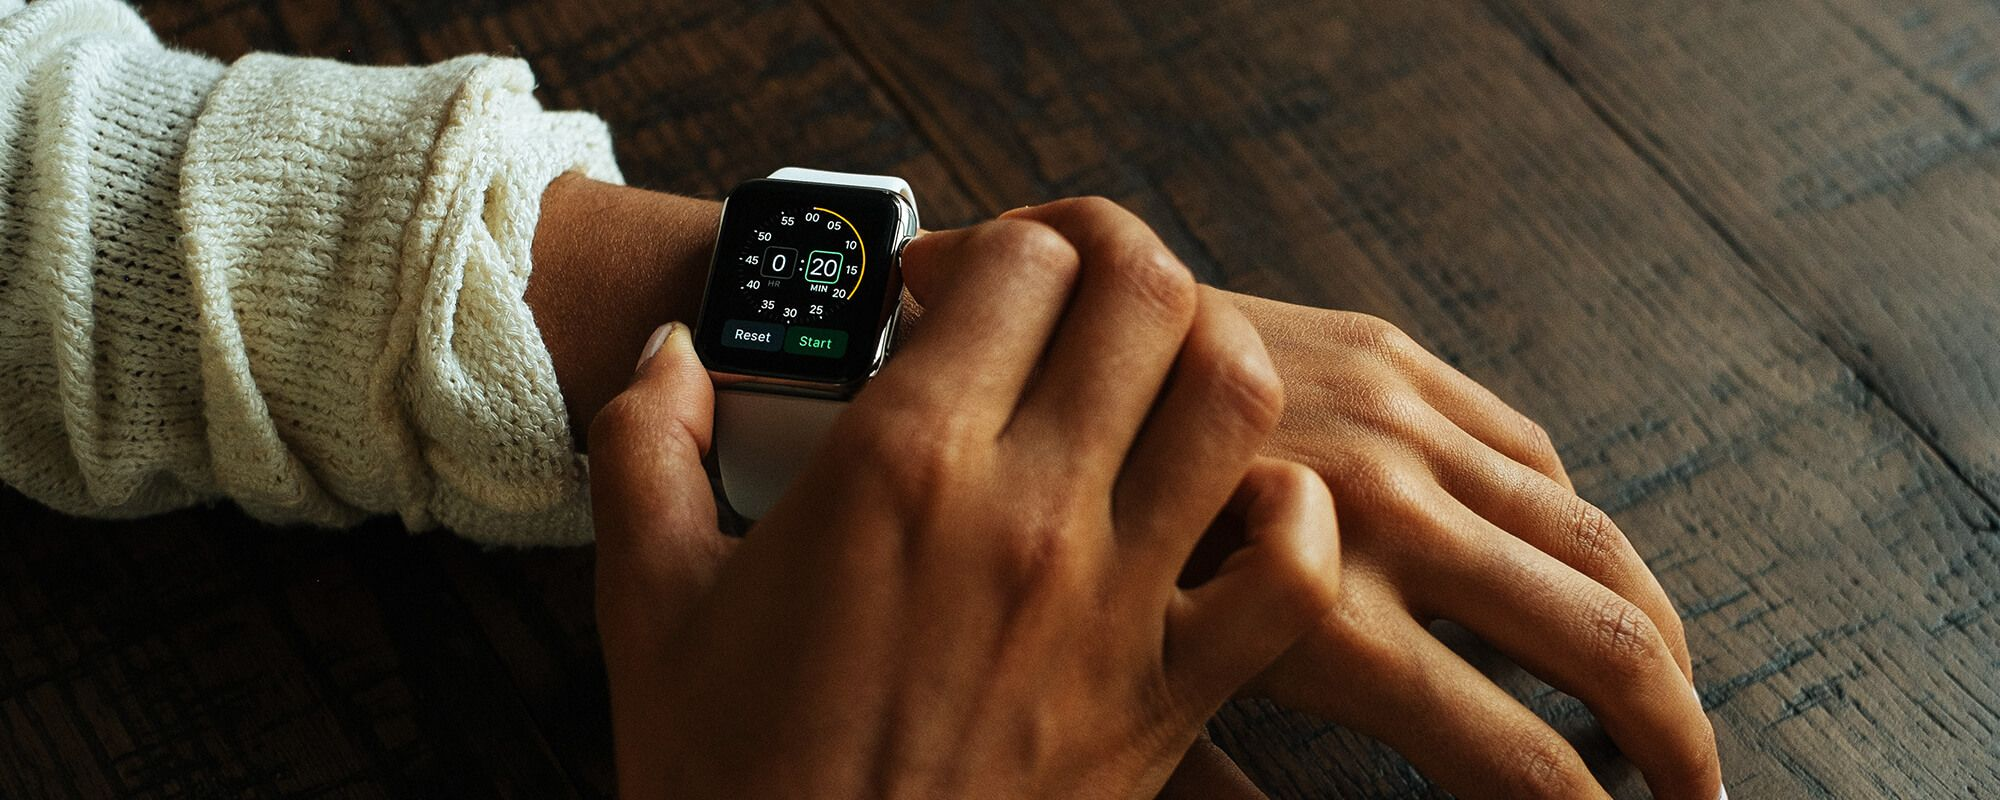 What Are the Key Challenges in Wearable Device Testing?